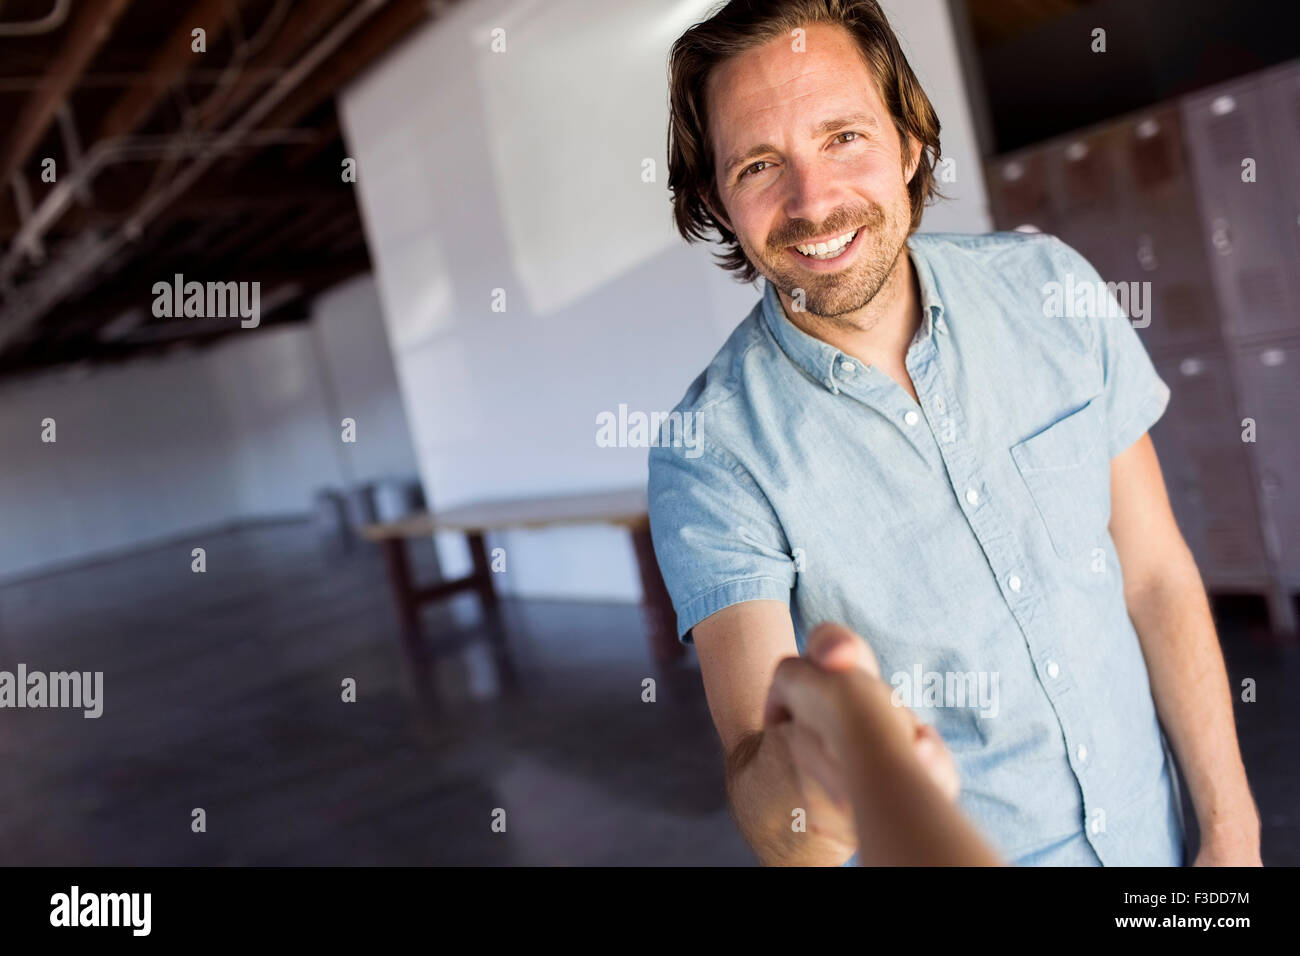 Man in warehouse - Stock Image